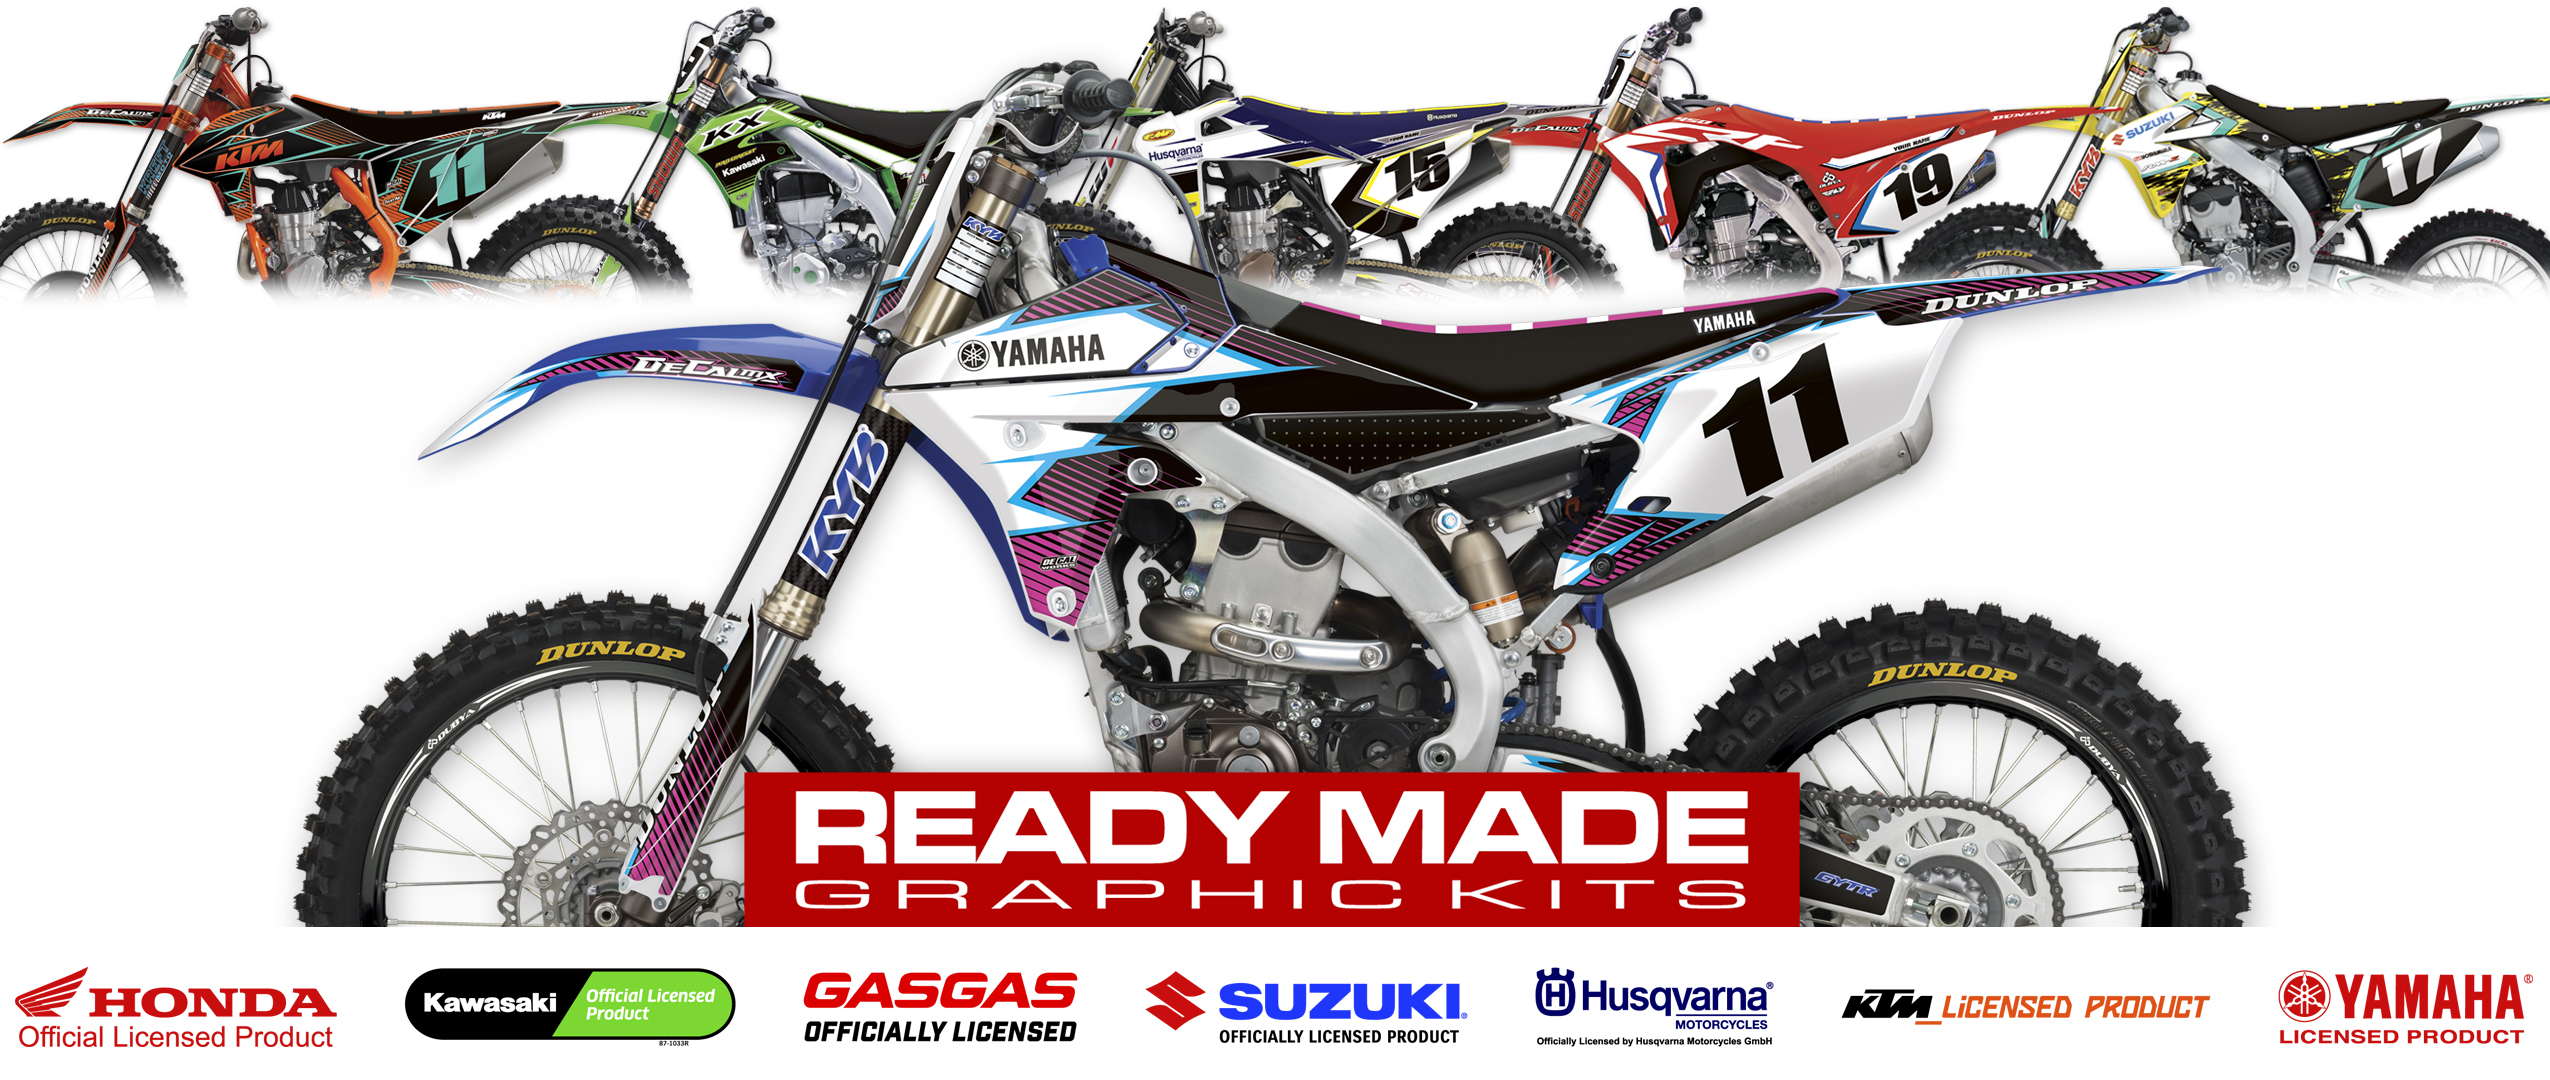 DeCal Works Custom MX Bike Graphics - Graphic design custom vinyl stickers